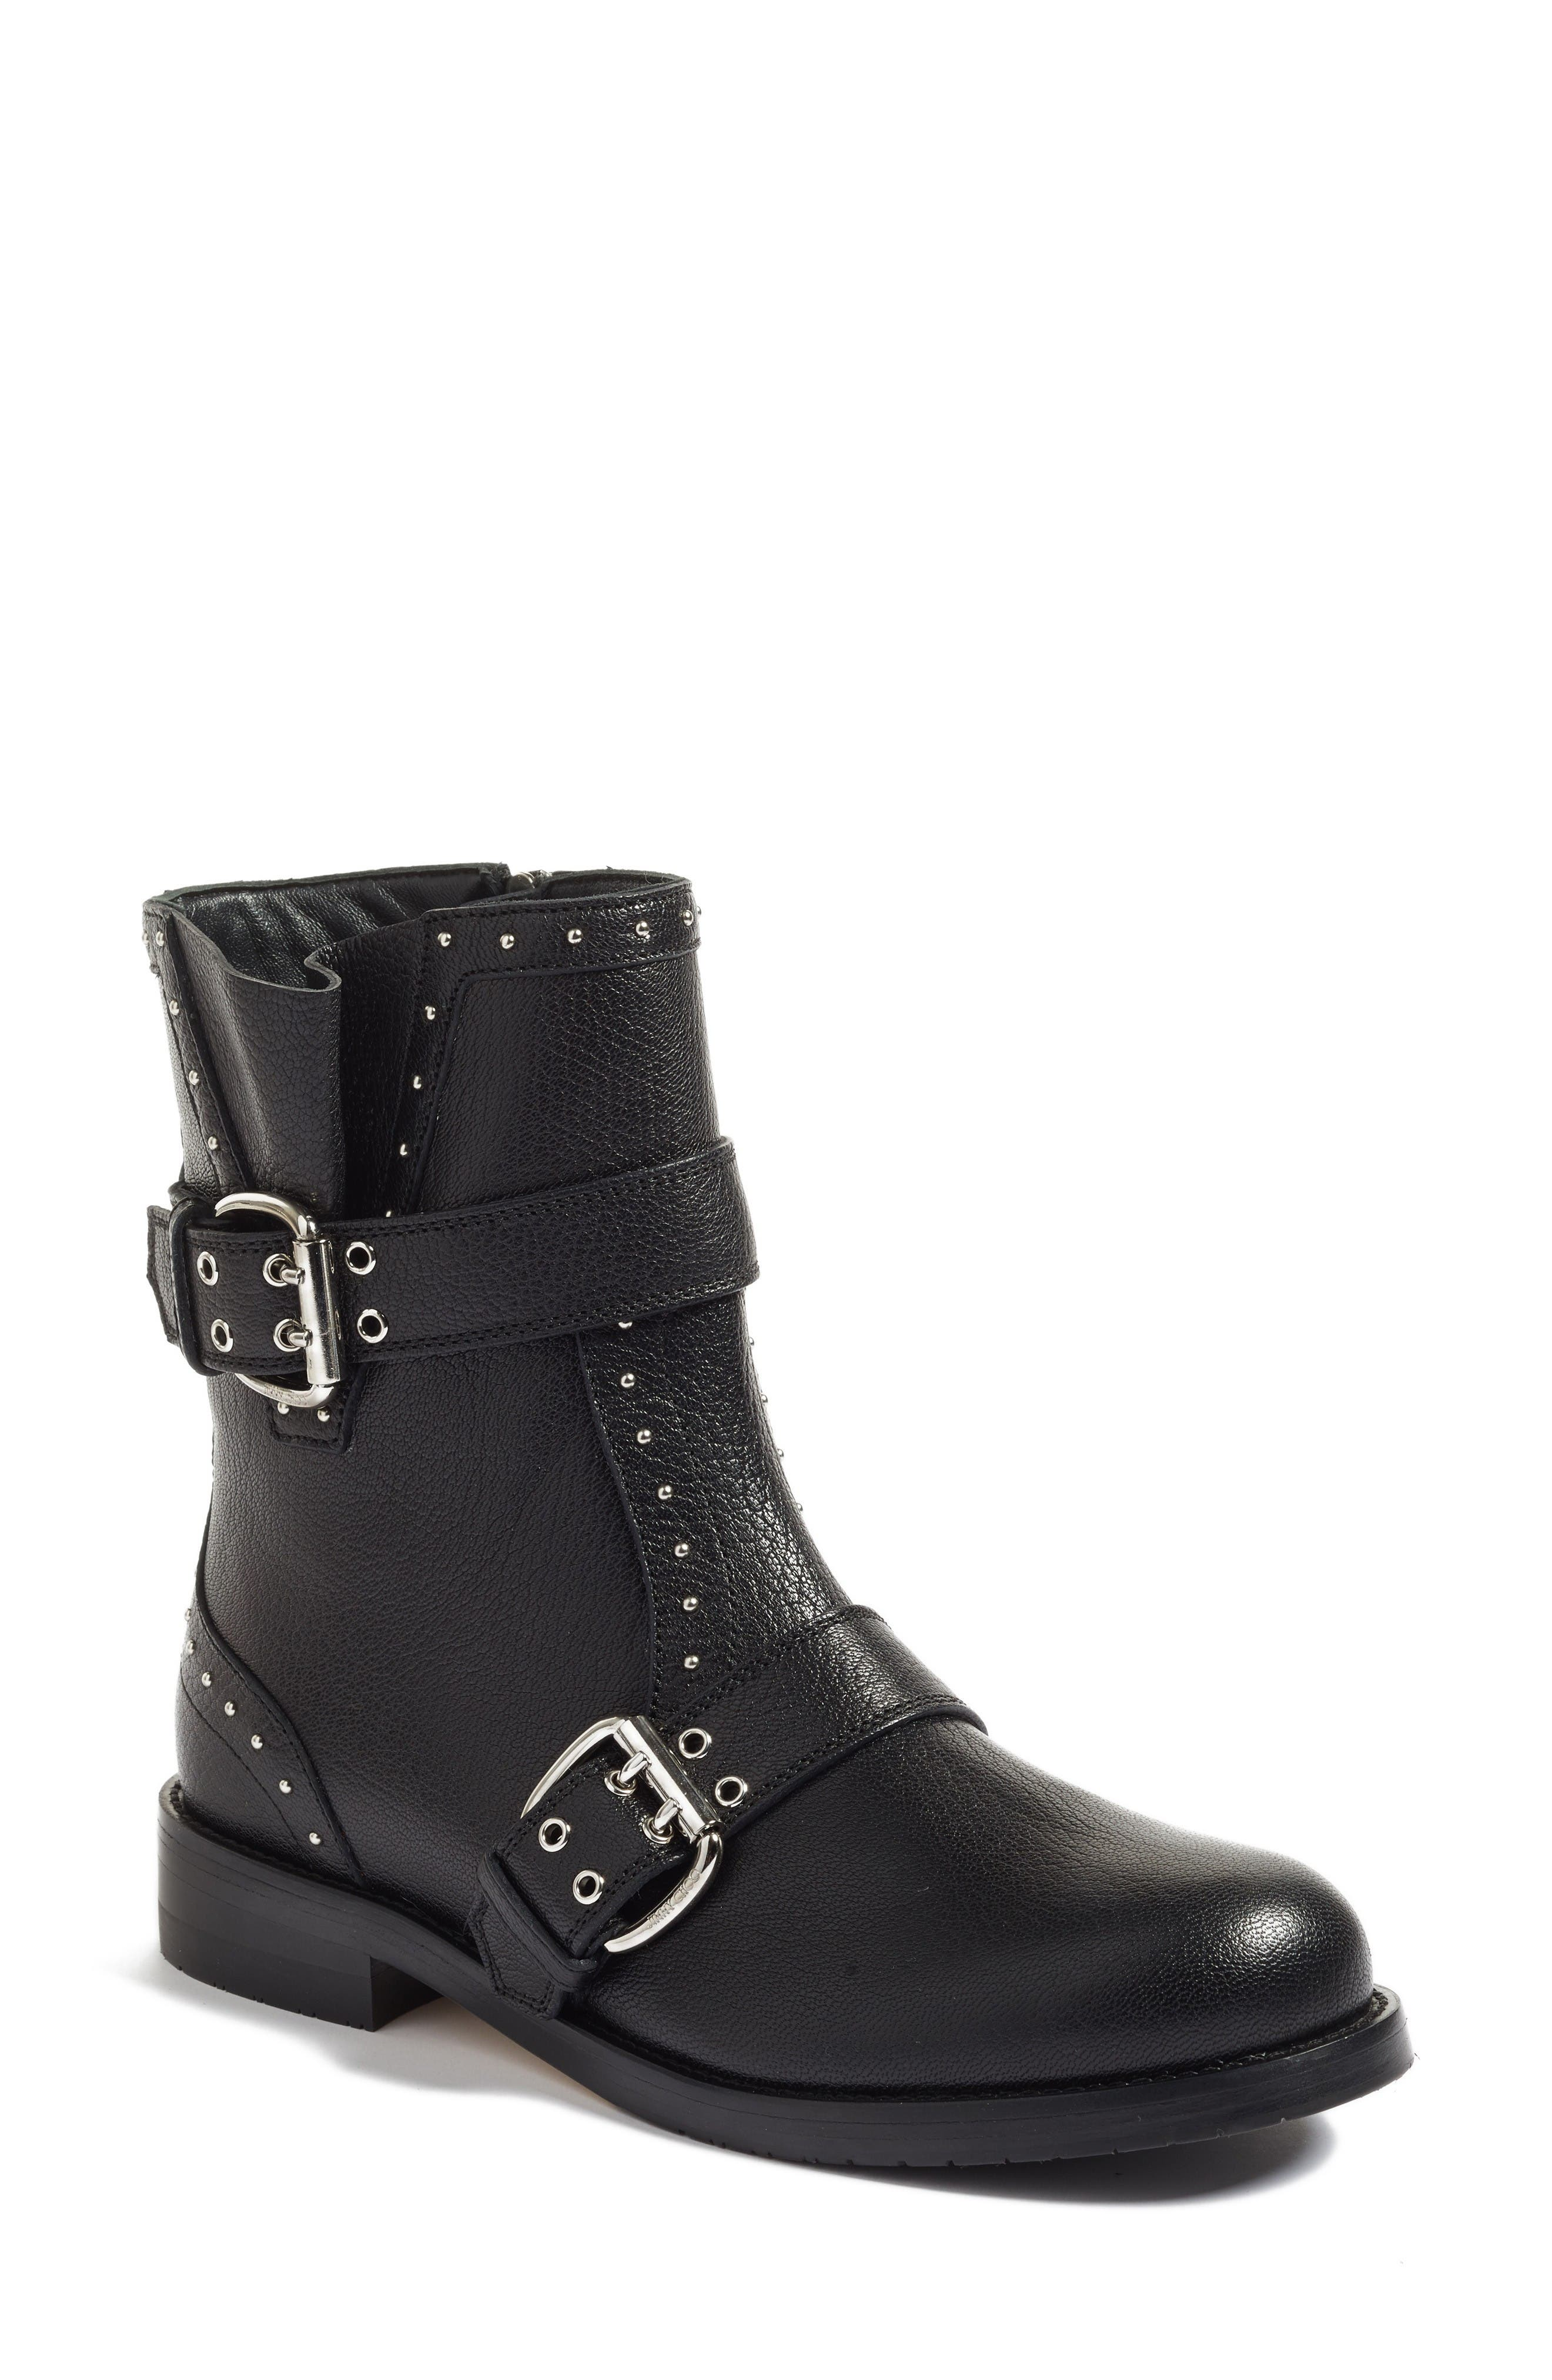 Blyss Combat Boot,                             Main thumbnail 1, color,                             Black Leather